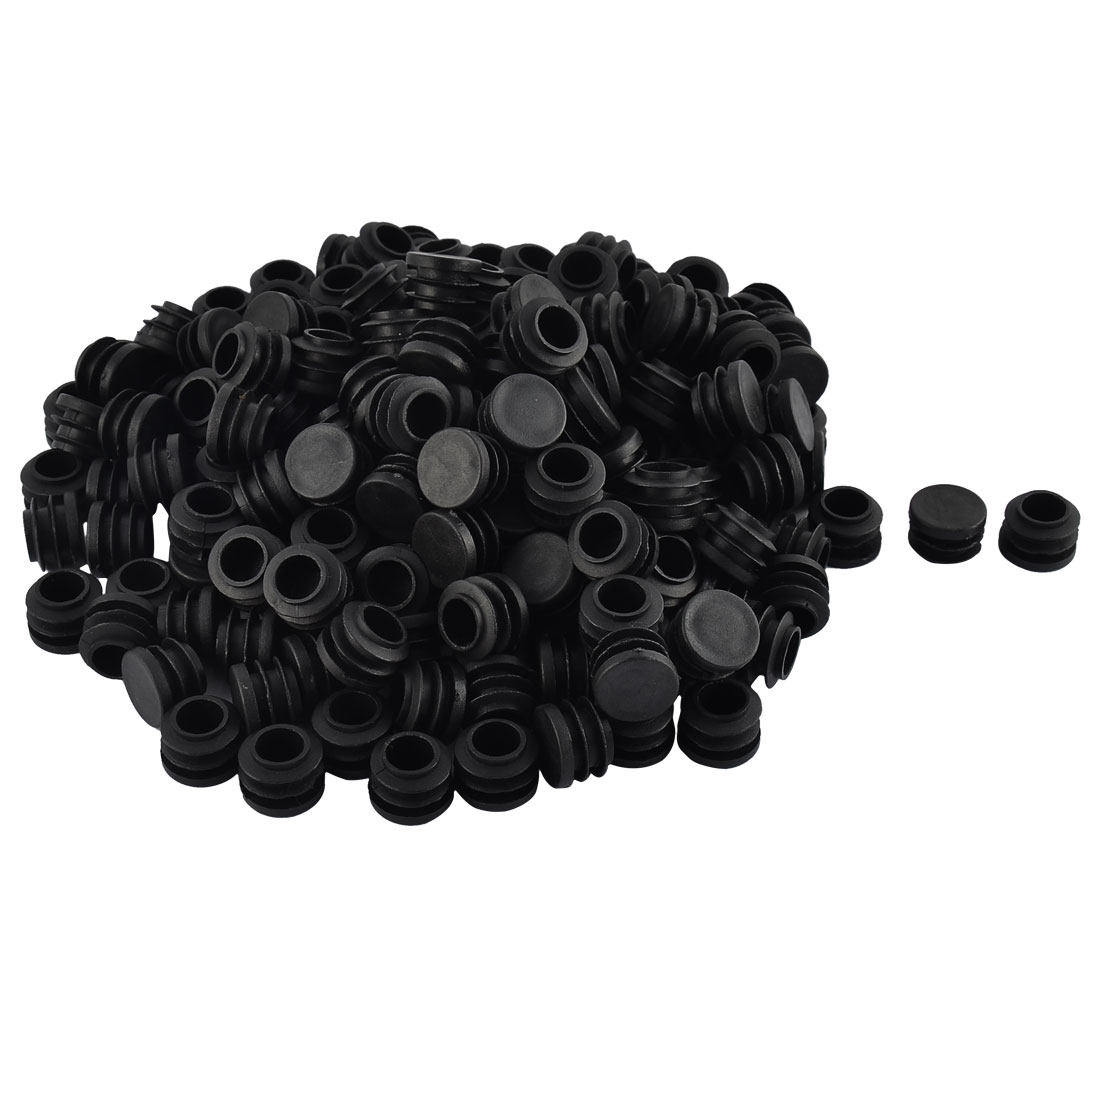 Furniture Table Chair Plastic Round Tube Pipe Insert Cap Cover Protector Black 19mm Dia 200pcs